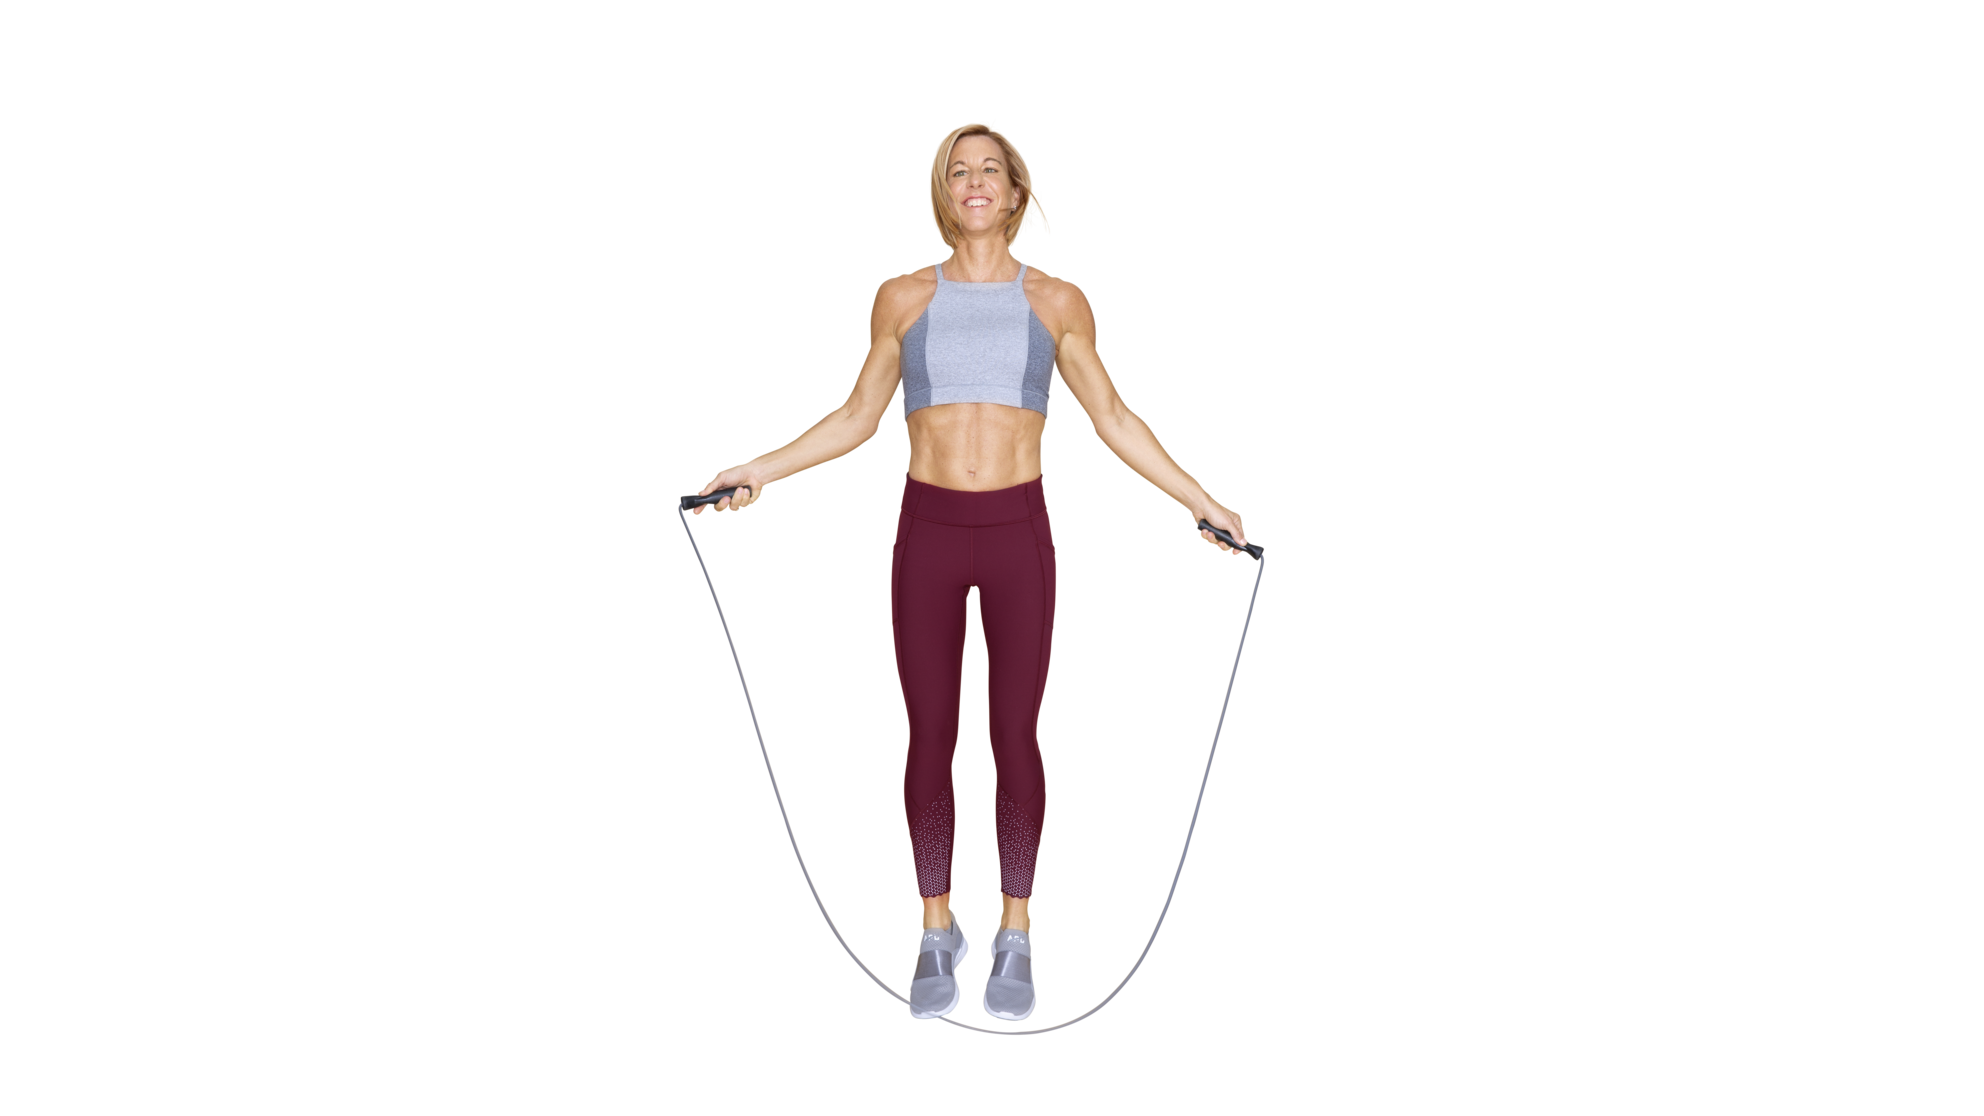 Jump Rope HIIT Workout Routine by Kira Stokes - Health